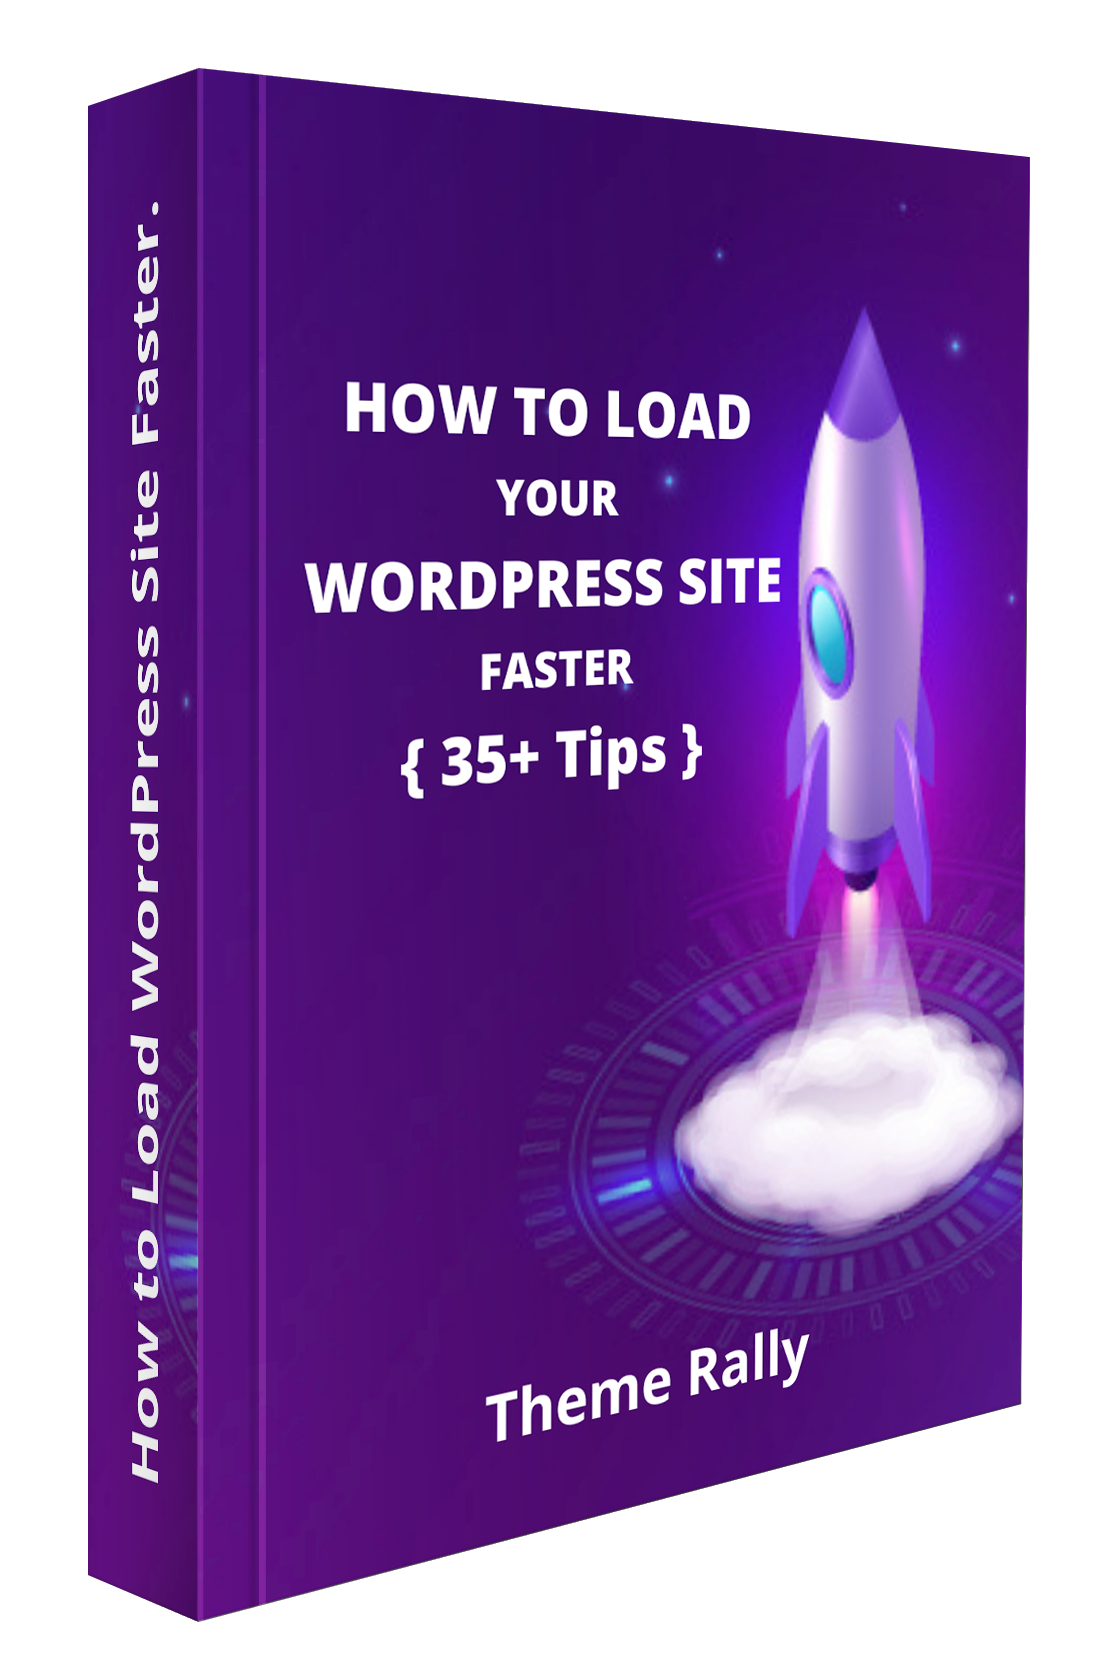 How to Load WordPress Site Faster